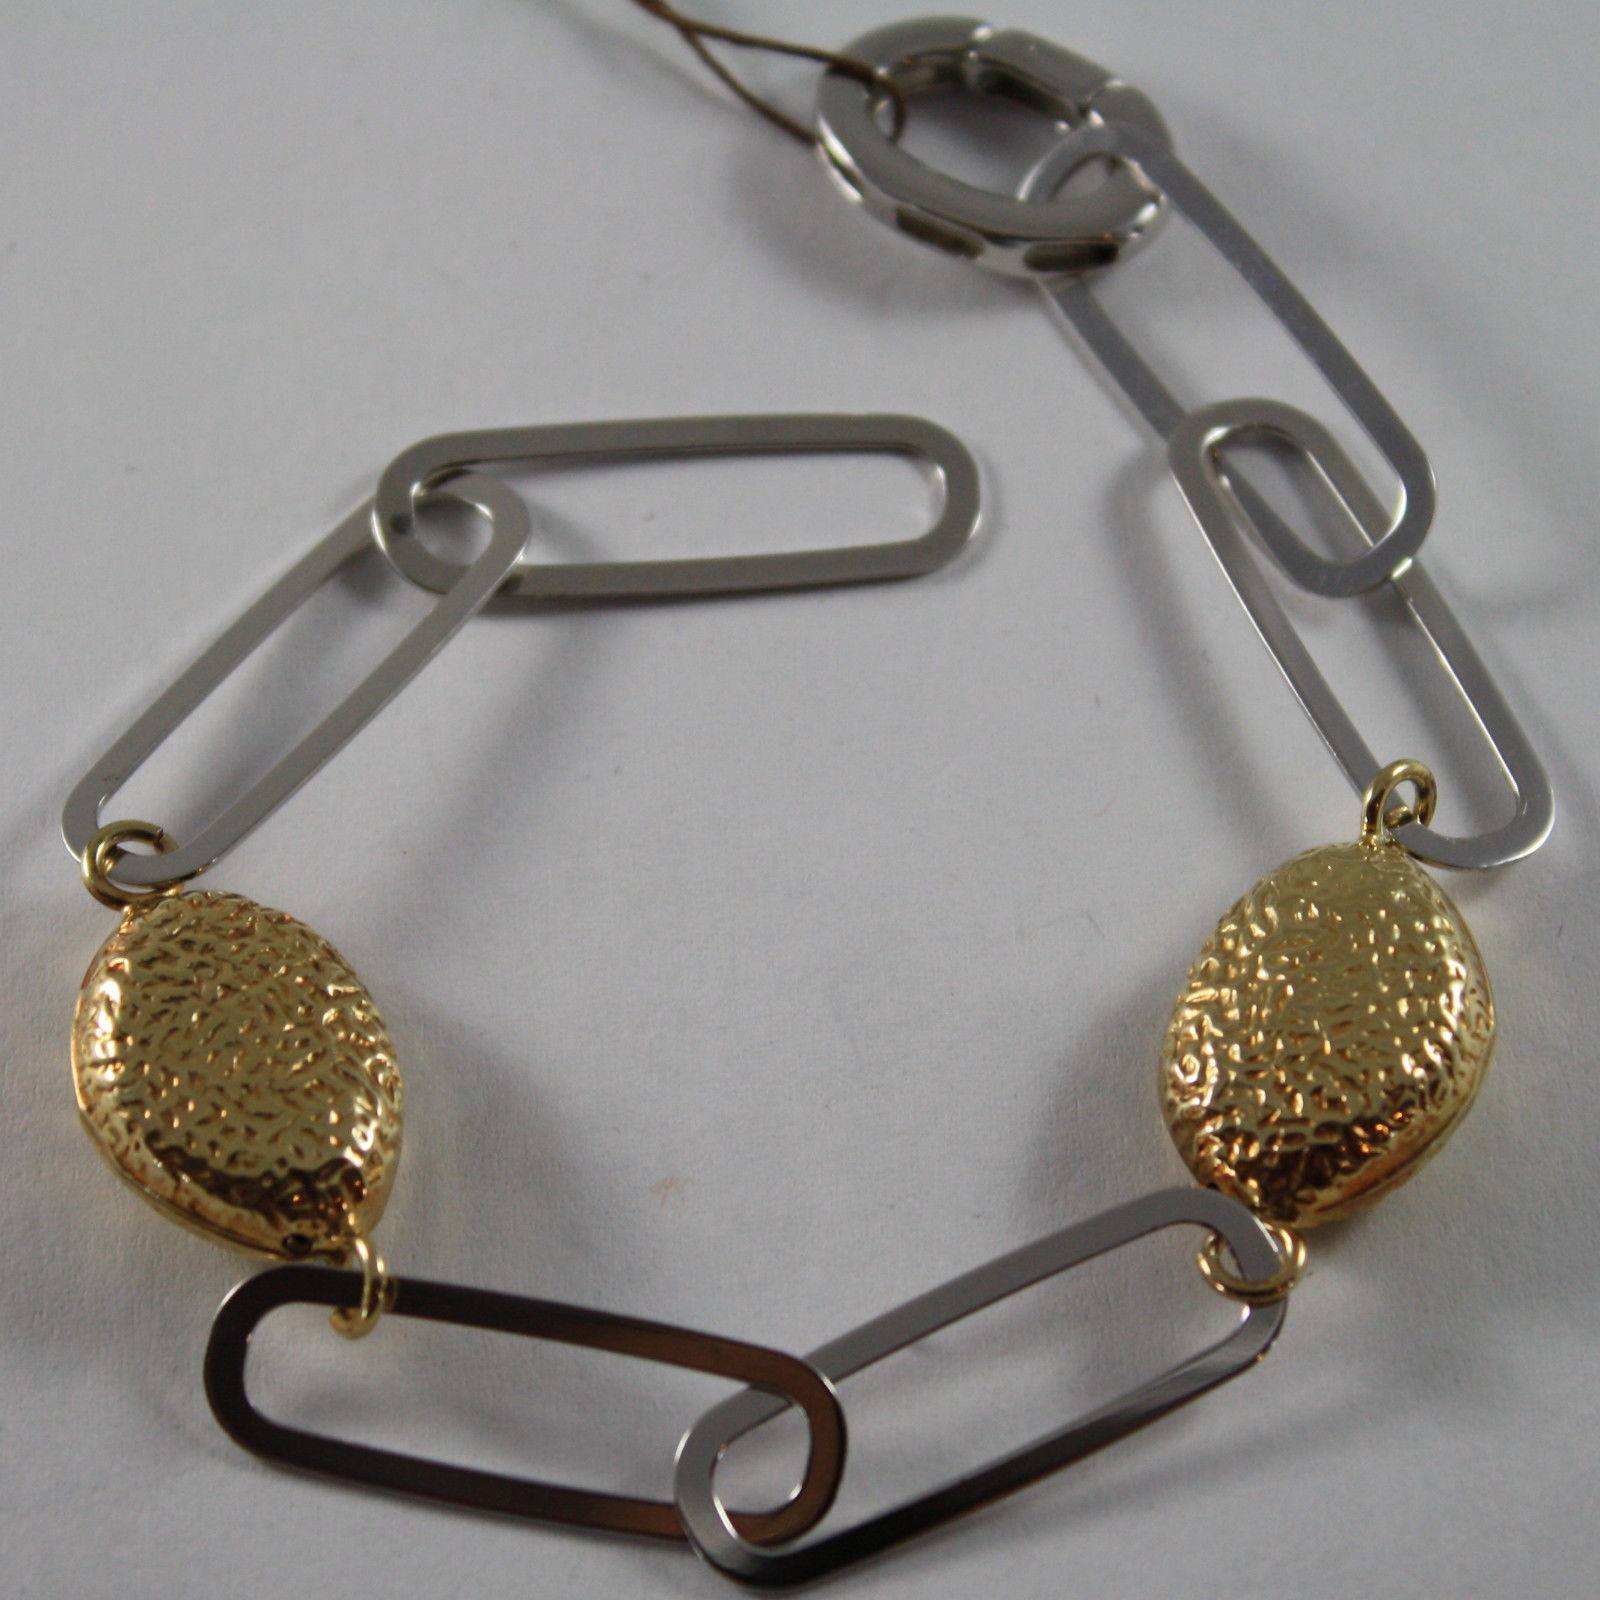 .925 RHODIUM SILVER AND YELLOW GOLD PLATED BRACELET WITH OVAL HAMMERED